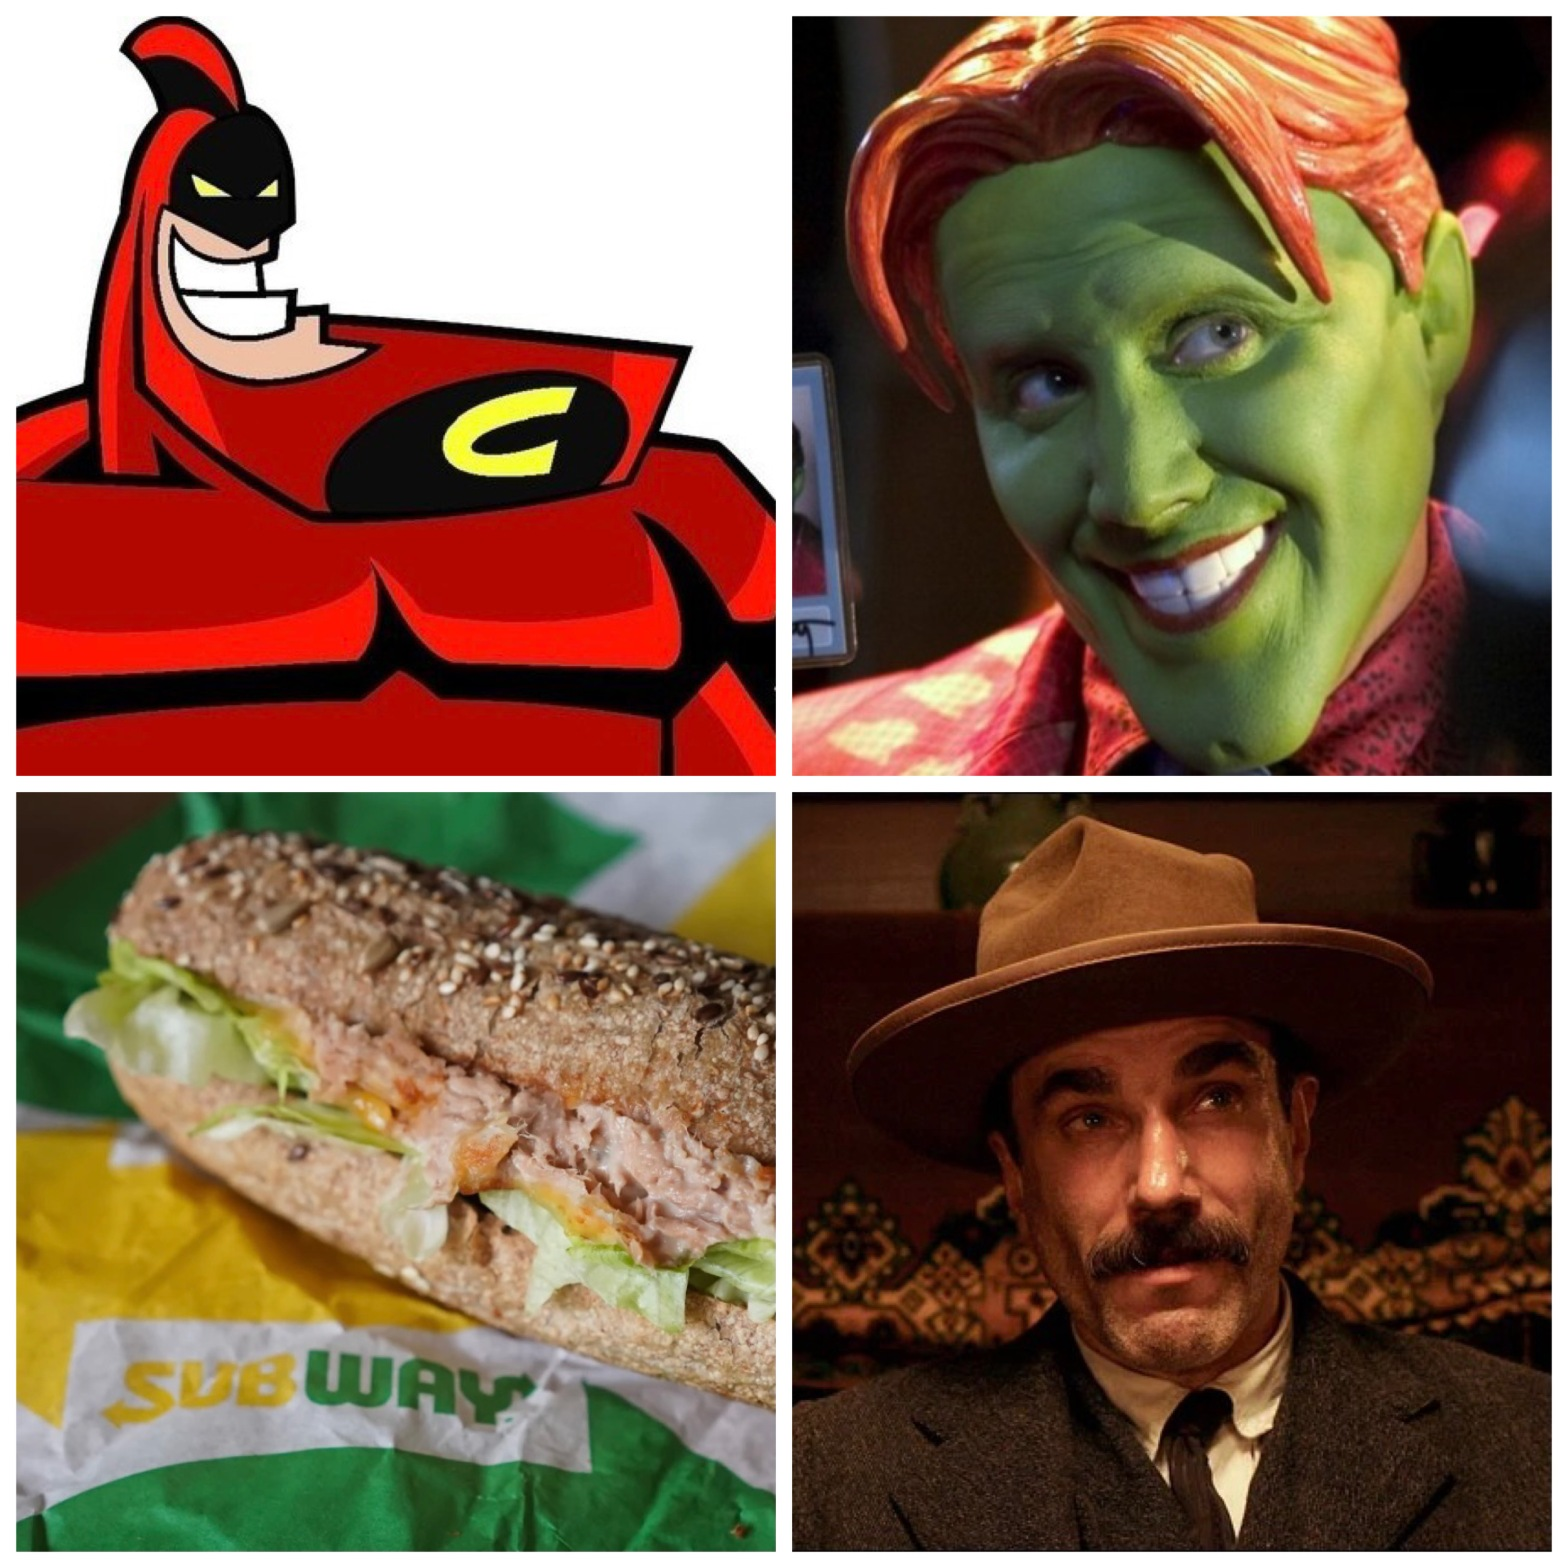 """Jay Leno's Crimson Chin, Jamie Kennedy's Son of the Mask, Subway's """"tuna"""" sandwich, and Daniel Day-Lewis in There Will Be Blood."""